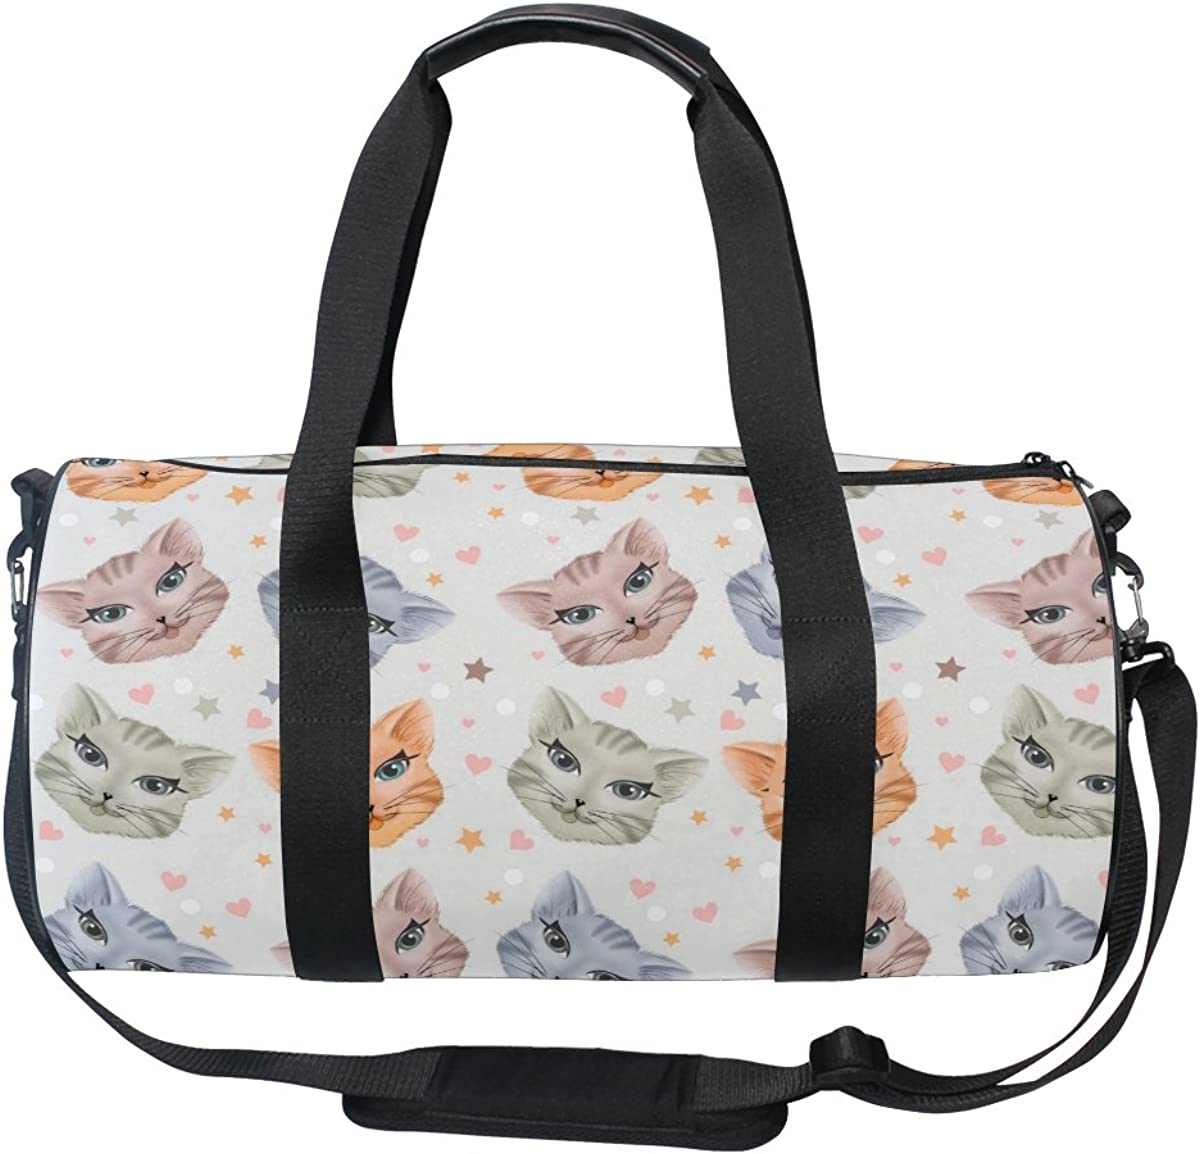 Travel Duffels Lovely Smile Cats Duffle Bag Luggage Sports Gym for Women /& Men